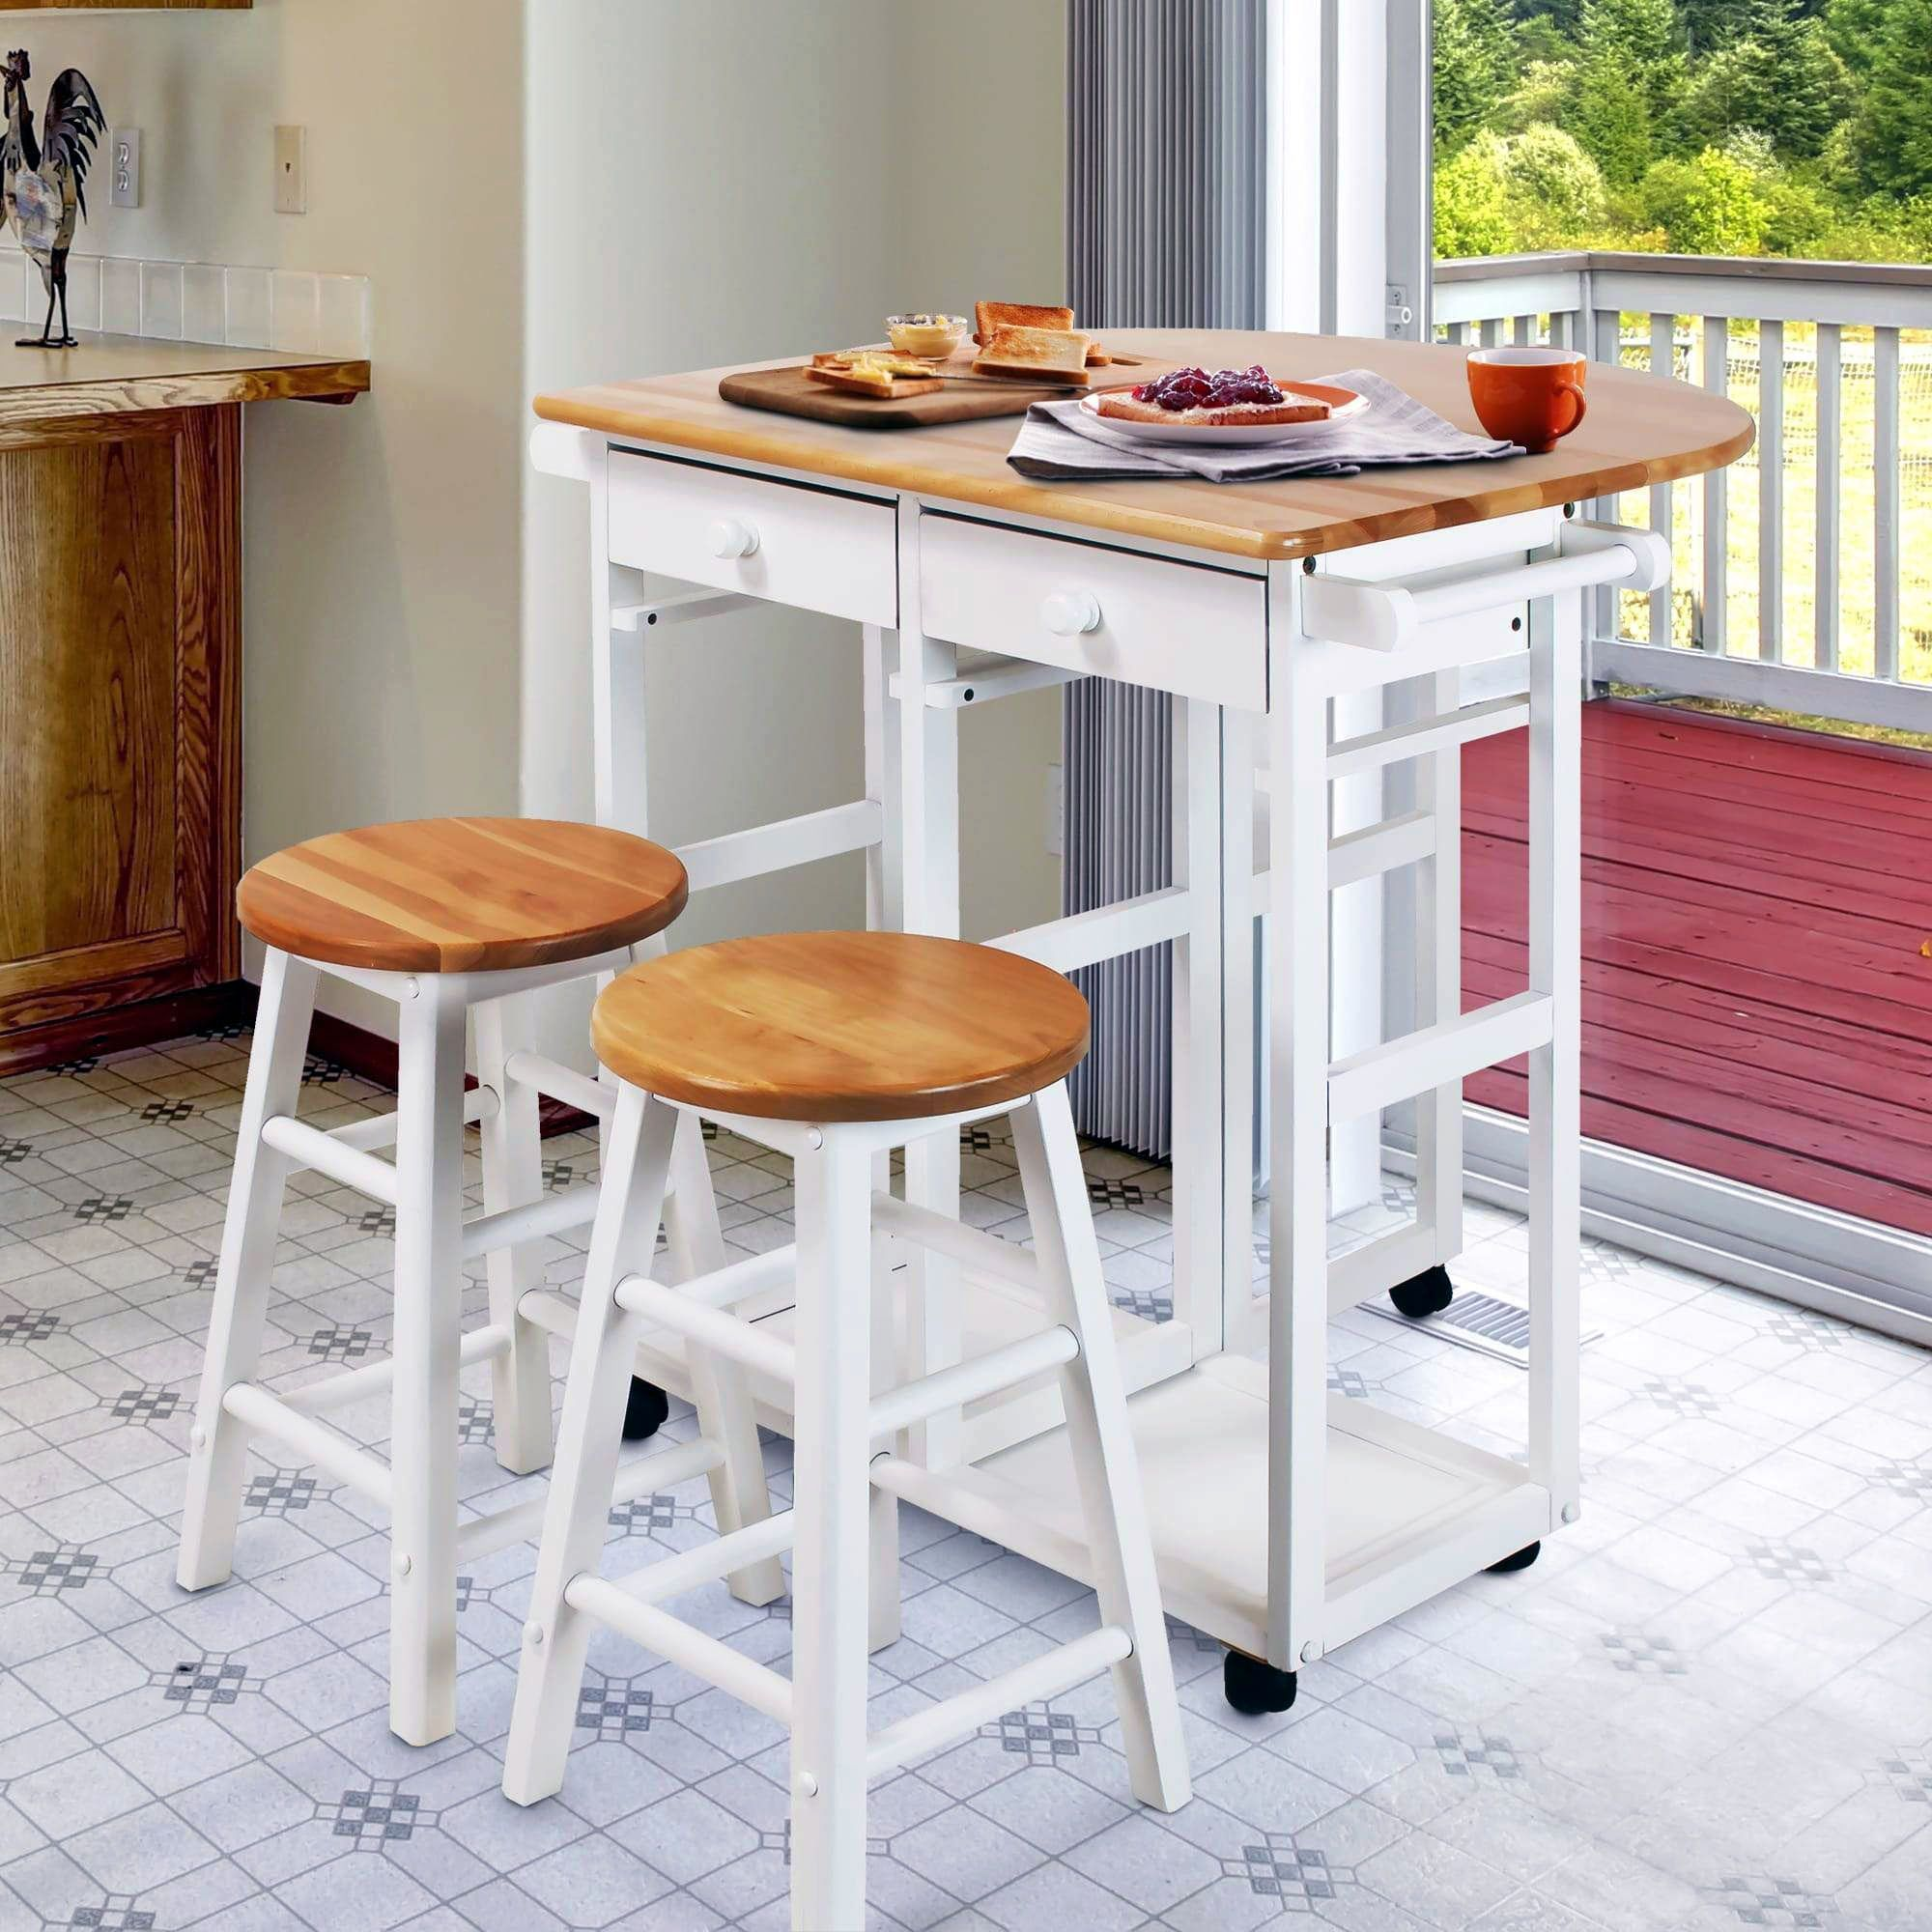 8 Small Kitchen Table Ideas for Your Home  Small kitchen tables